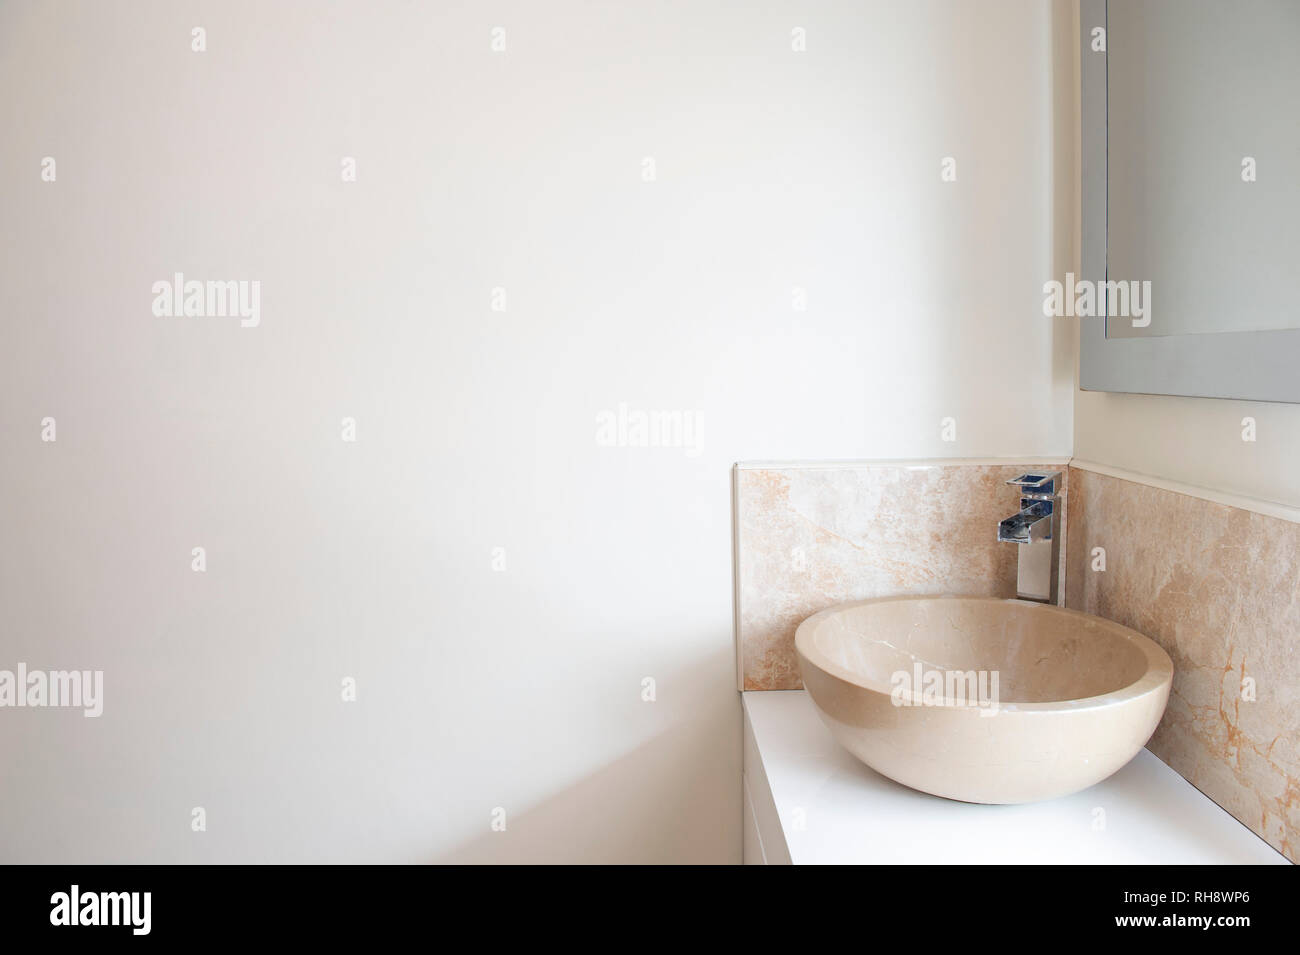 A granite wash basin (sink) on a white bathroom worktop in front of blank off white wall. - Stock Image